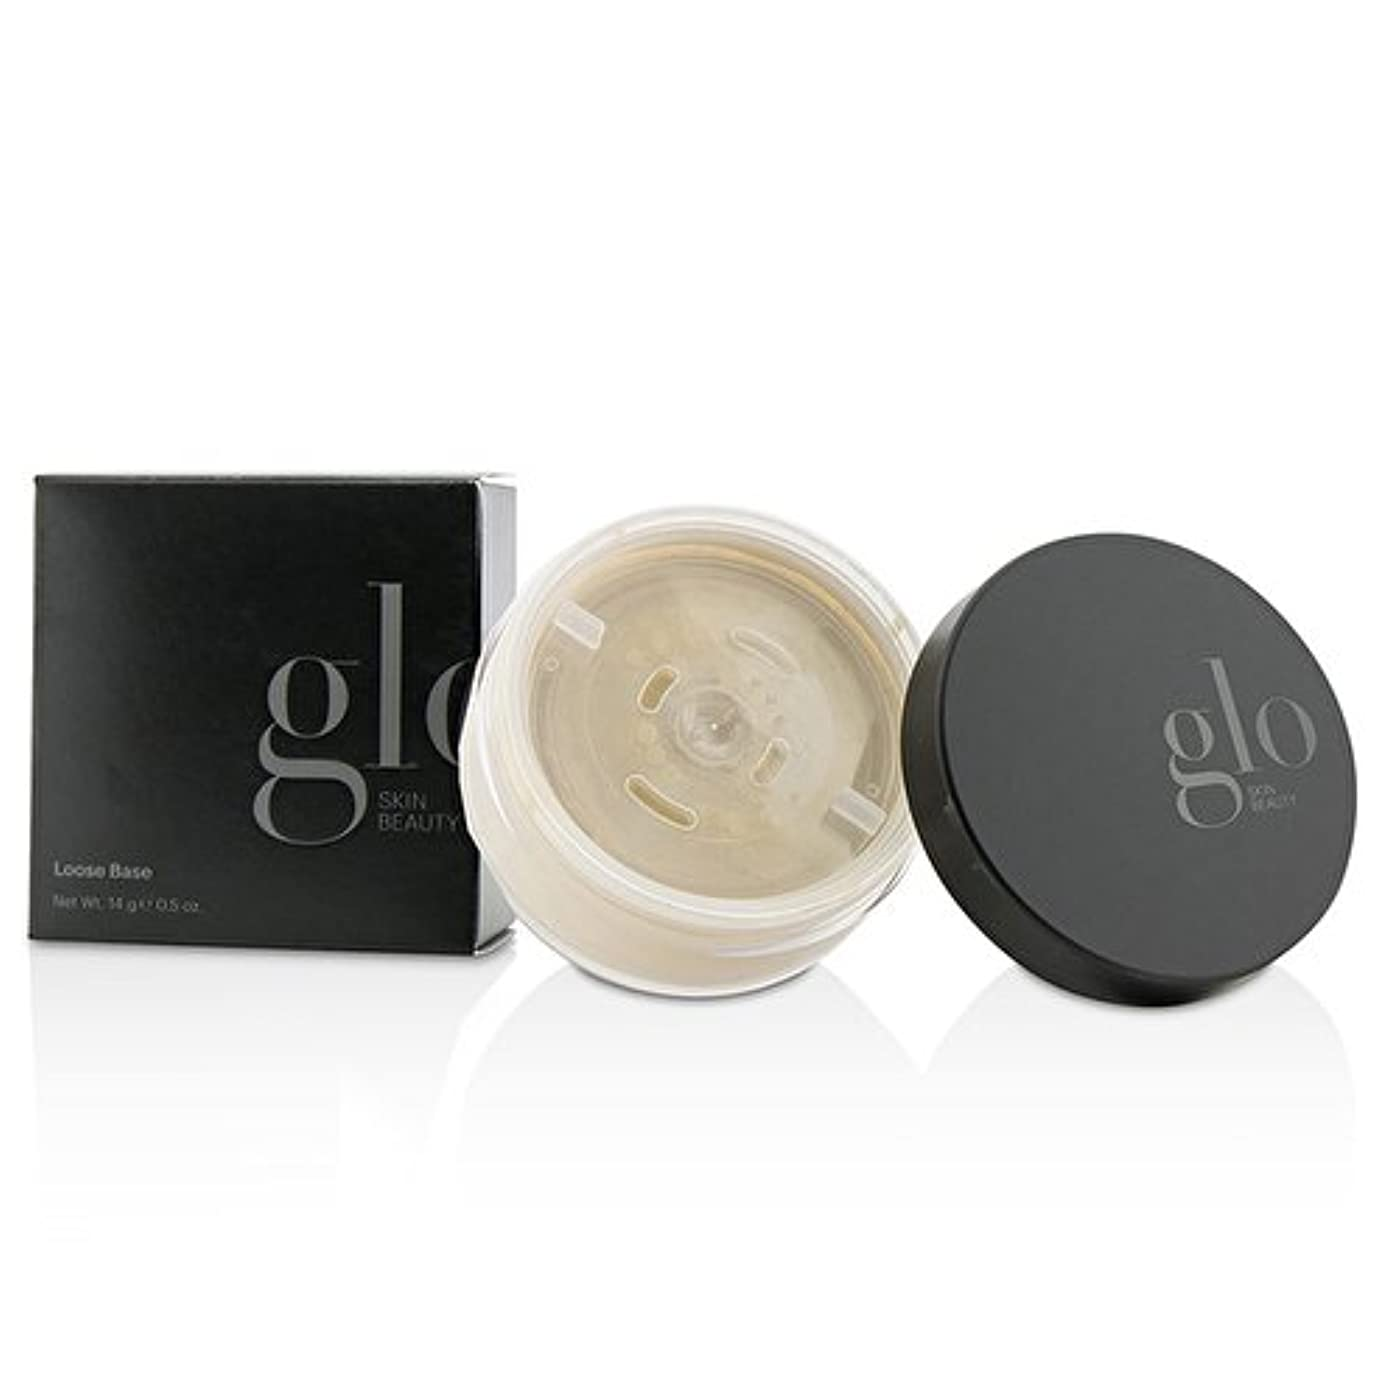 バージンアルコール隠Glo Skin Beauty Loose Base (Mineral Foundation) - # Natural Fair 14g/0.5oz並行輸入品